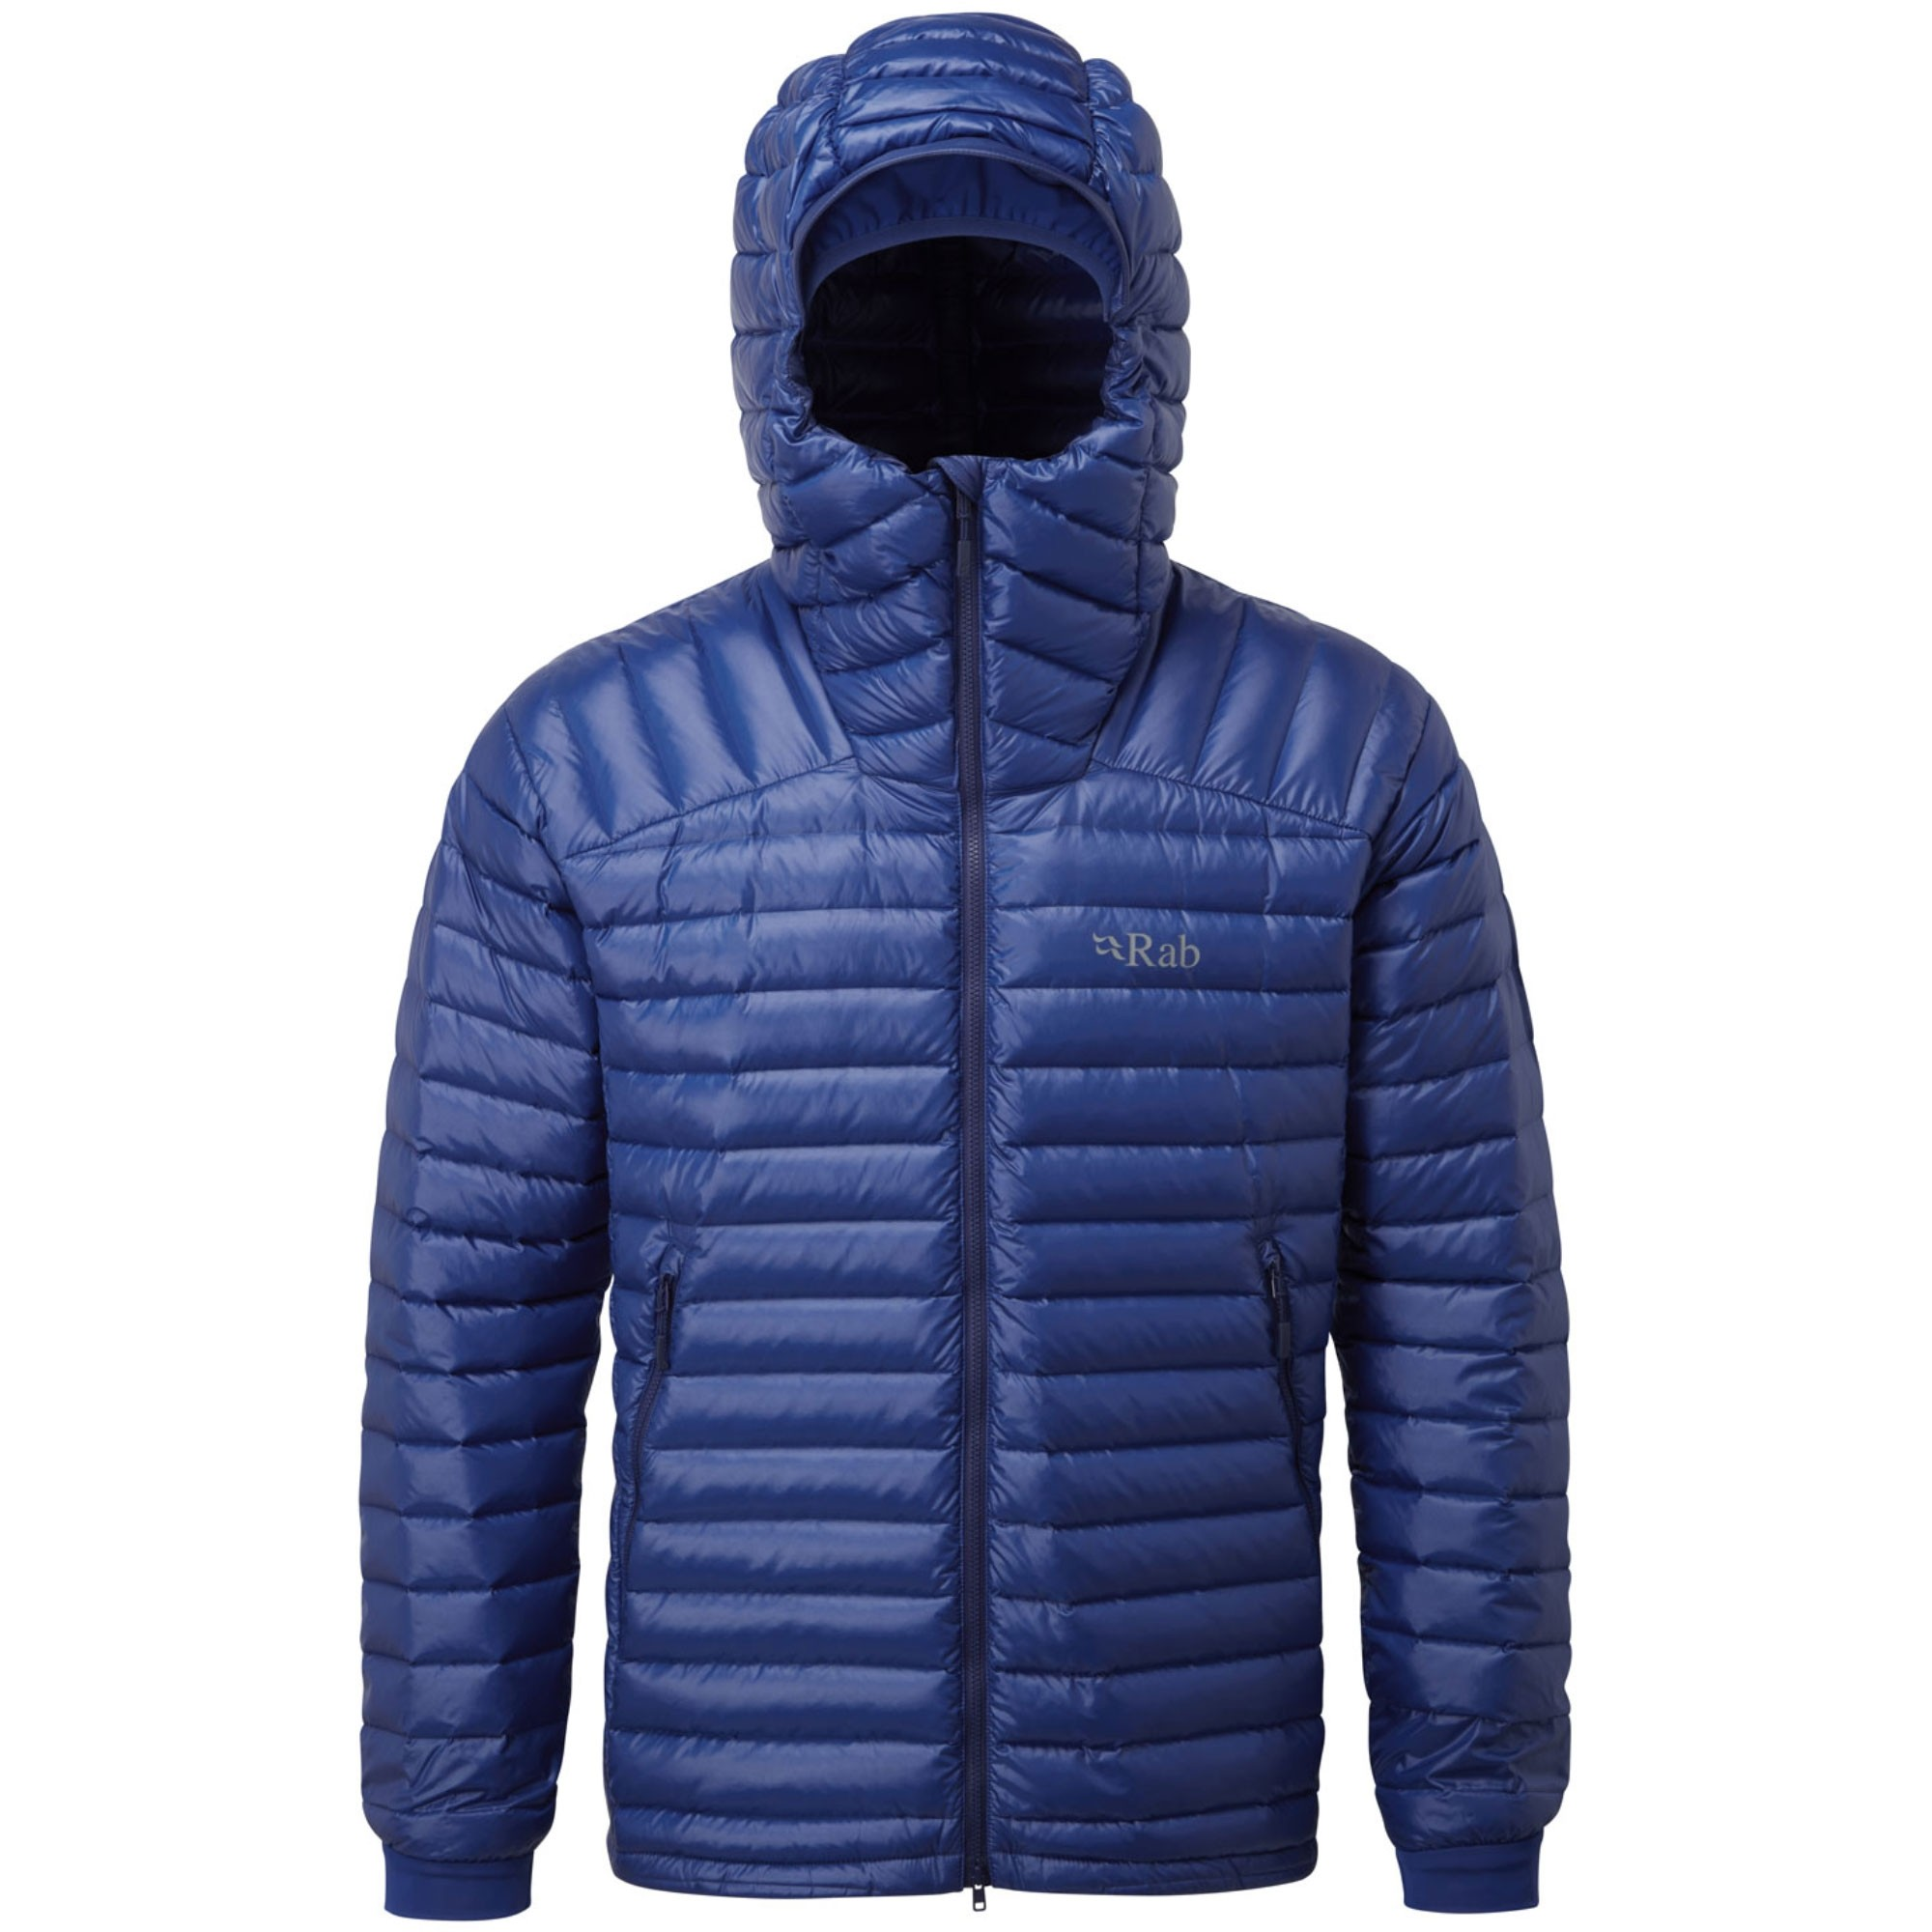 Rab Microlight Summit Down Jacket - Celestial